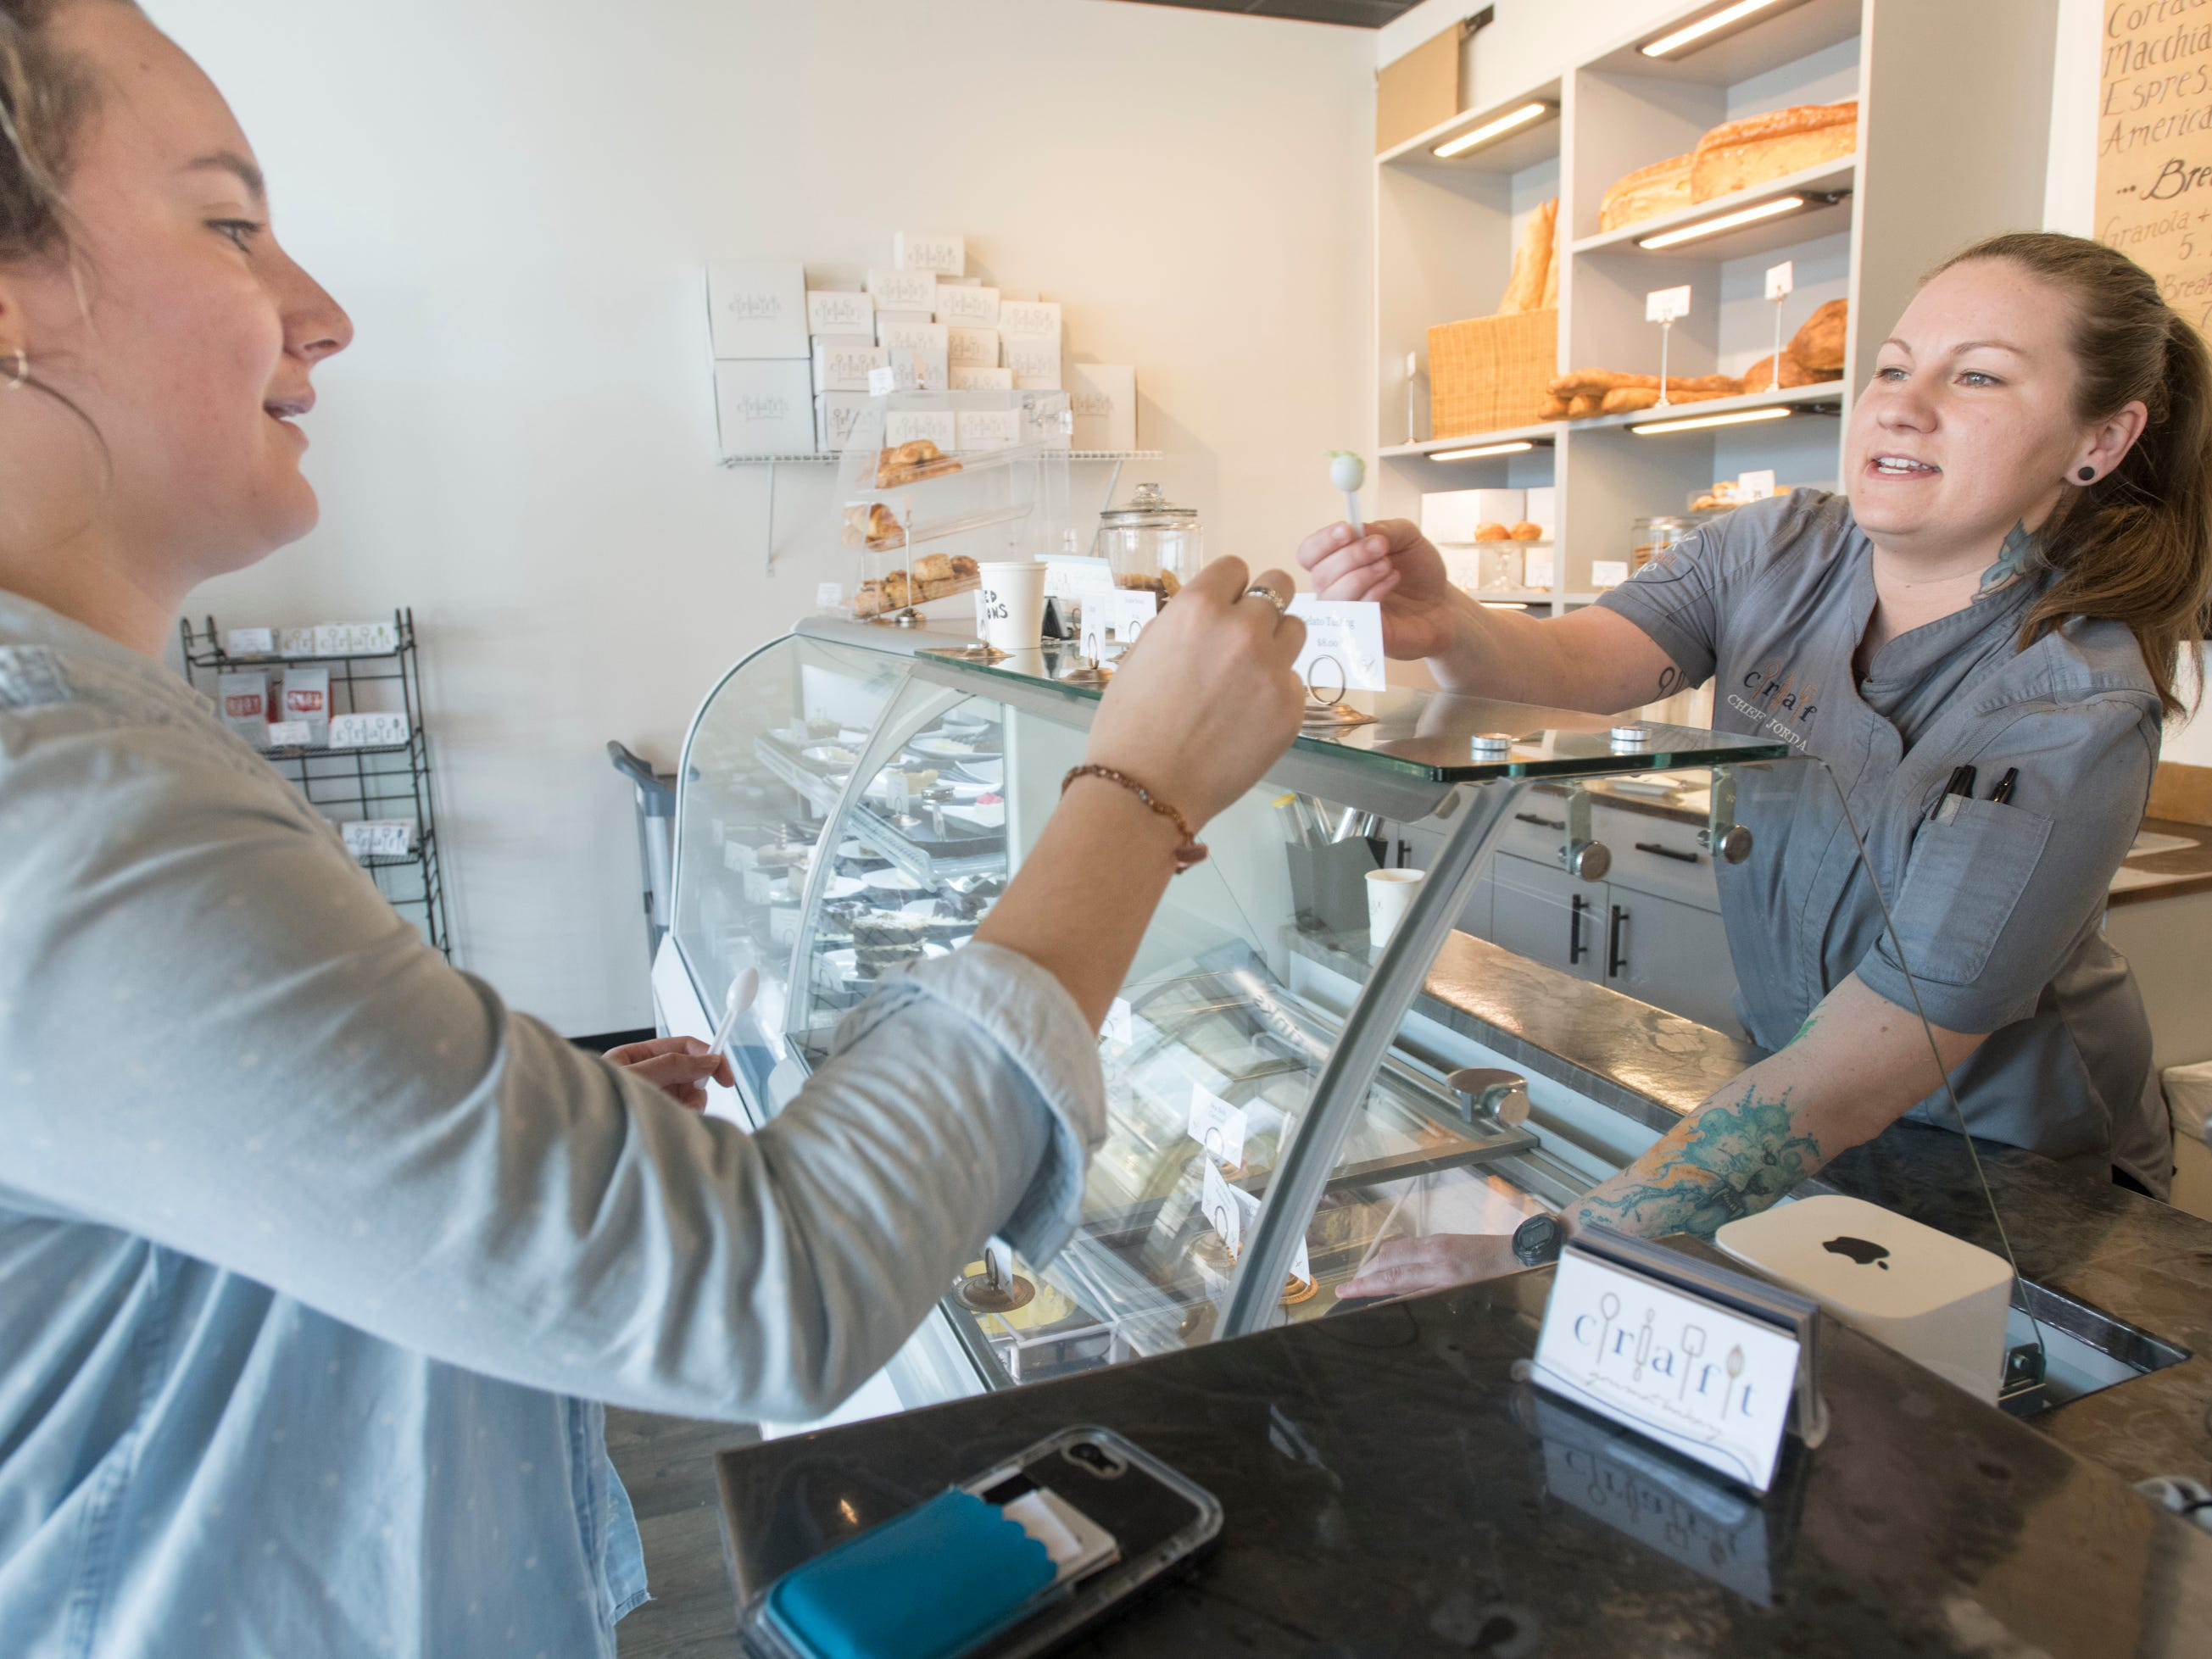 Owner Jordan Hewes, right, hands Sarah Ruscitto a gelato sample at Craft Gourmet Bakery in Pensacola on Friday, March 8, 2019.